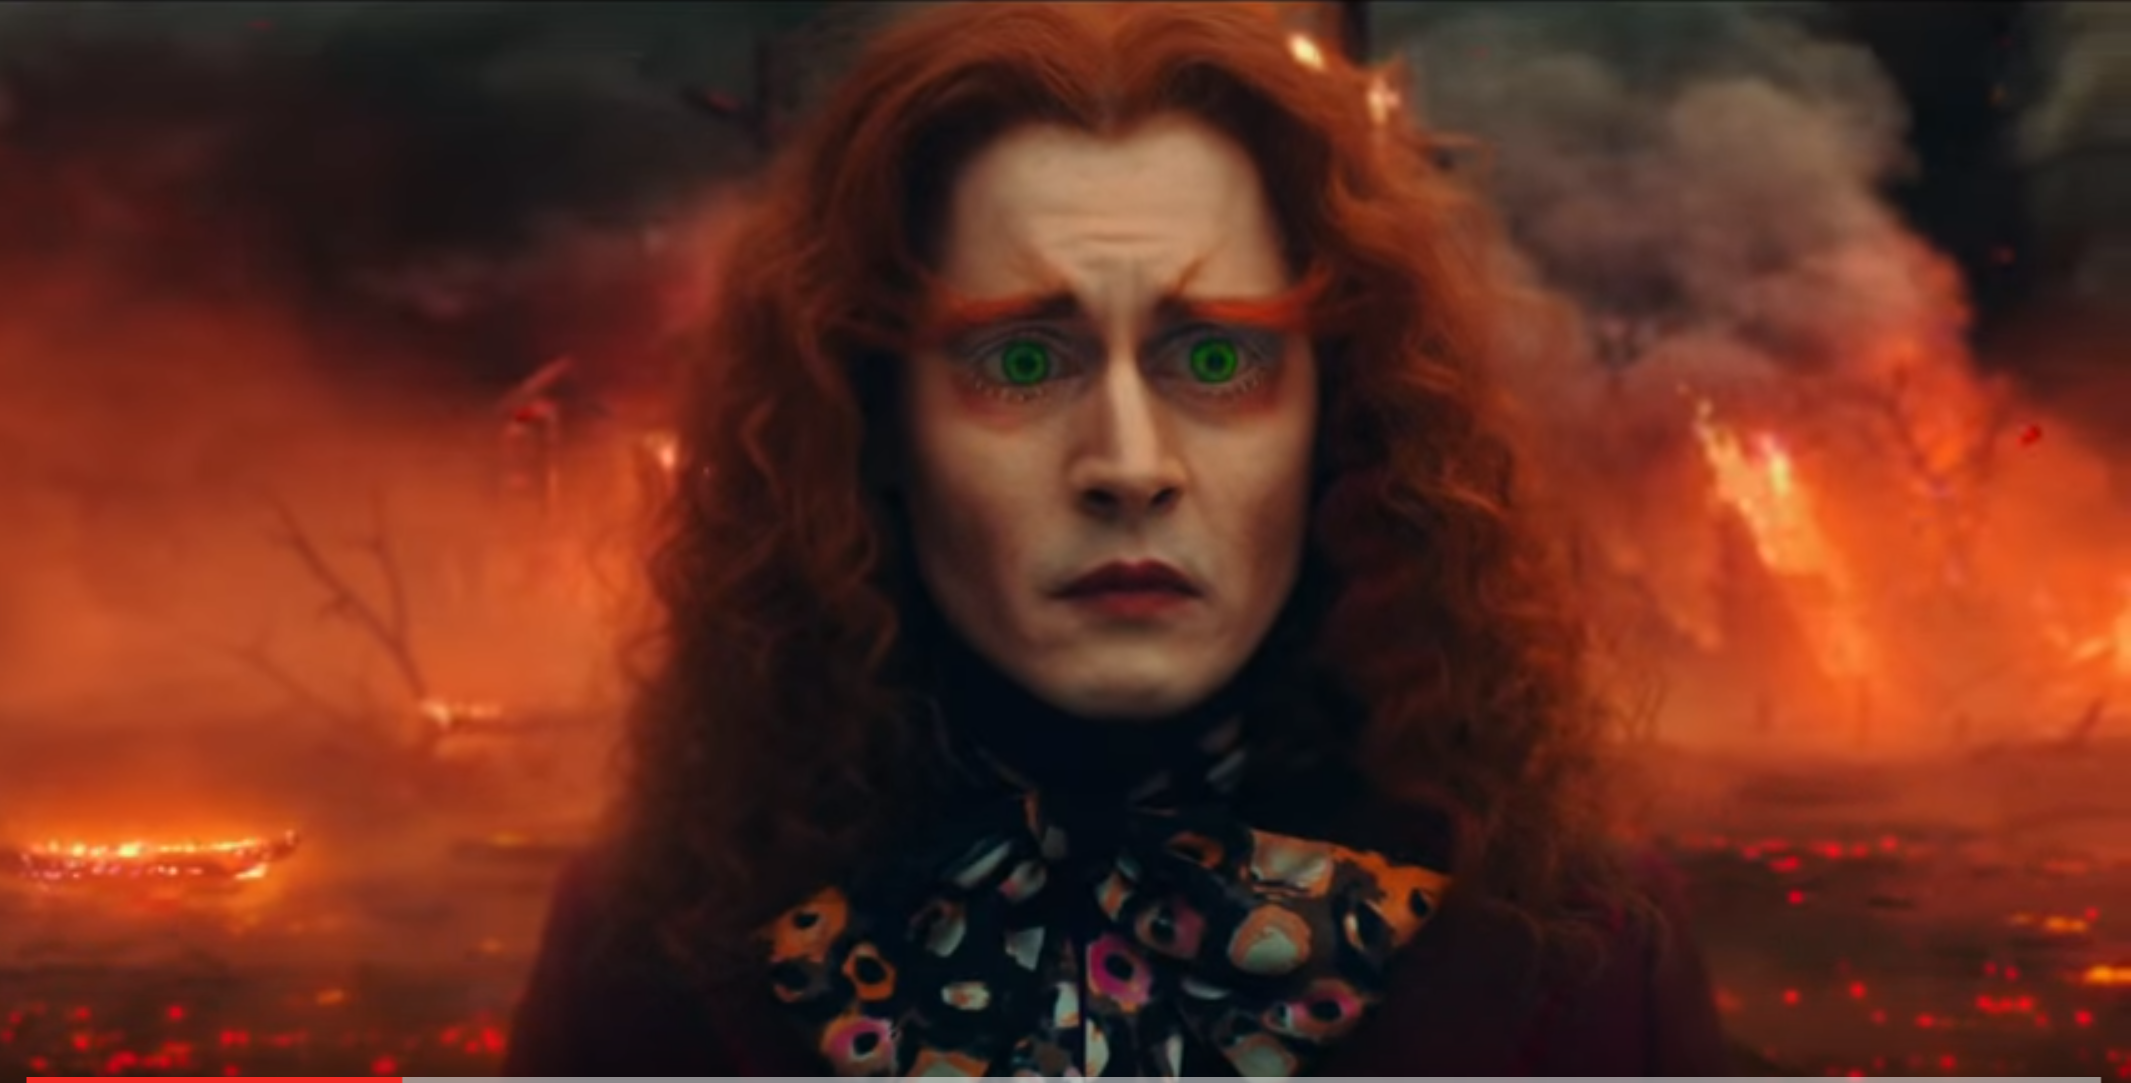 The New Trailer Is Here! Disney's Alice Through The Looking Glass!